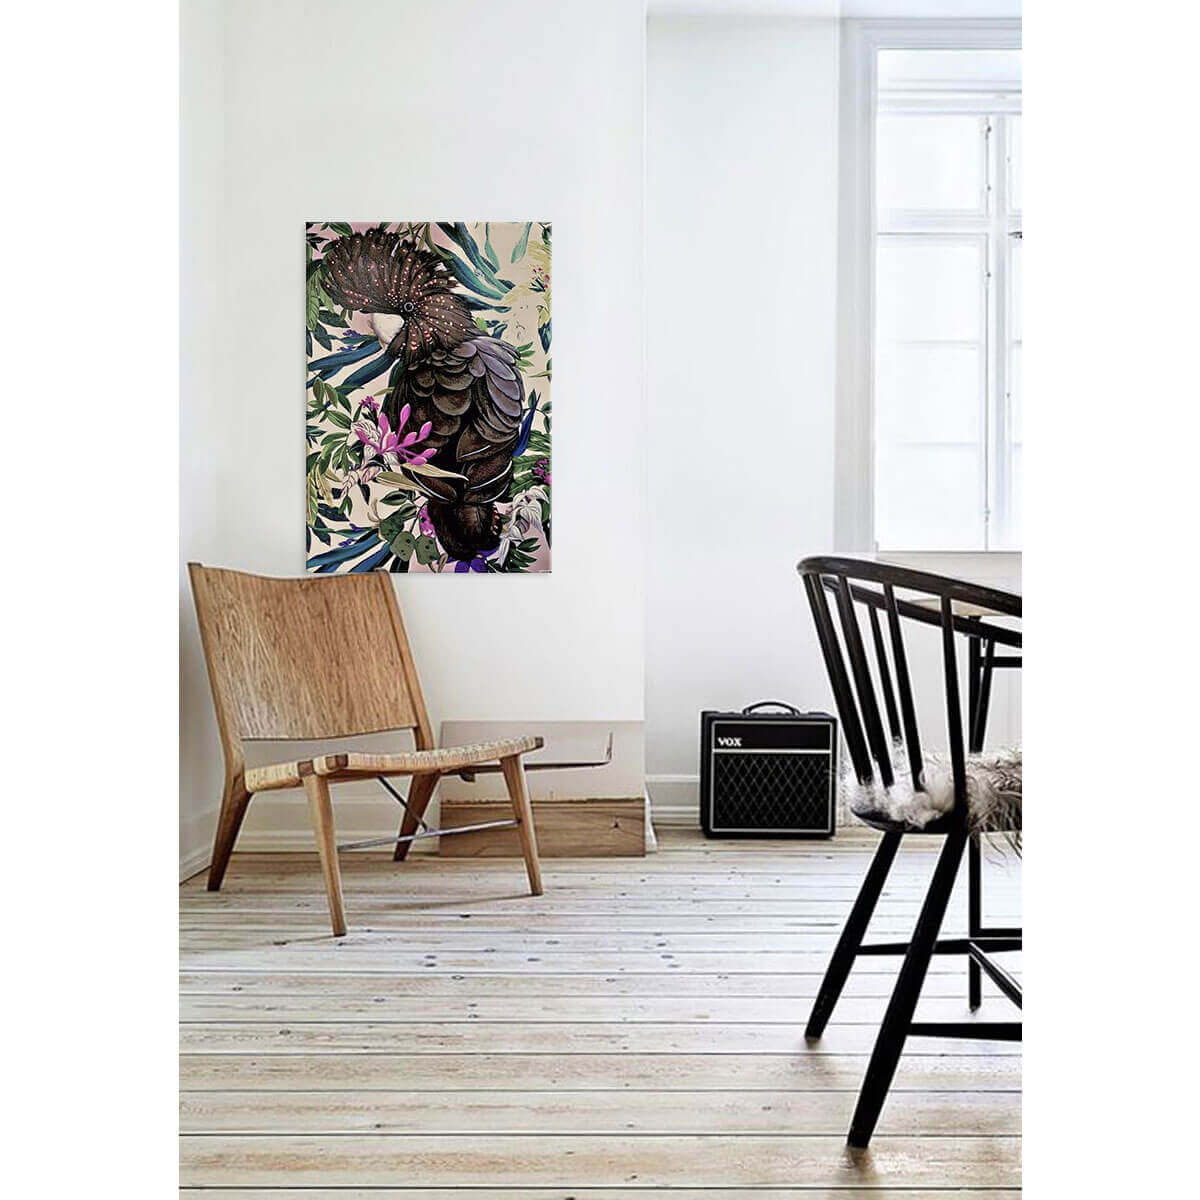 sirieuse sway hand painted art hand painting spring inspired pop of colour bright vibrant on trend contemporary art